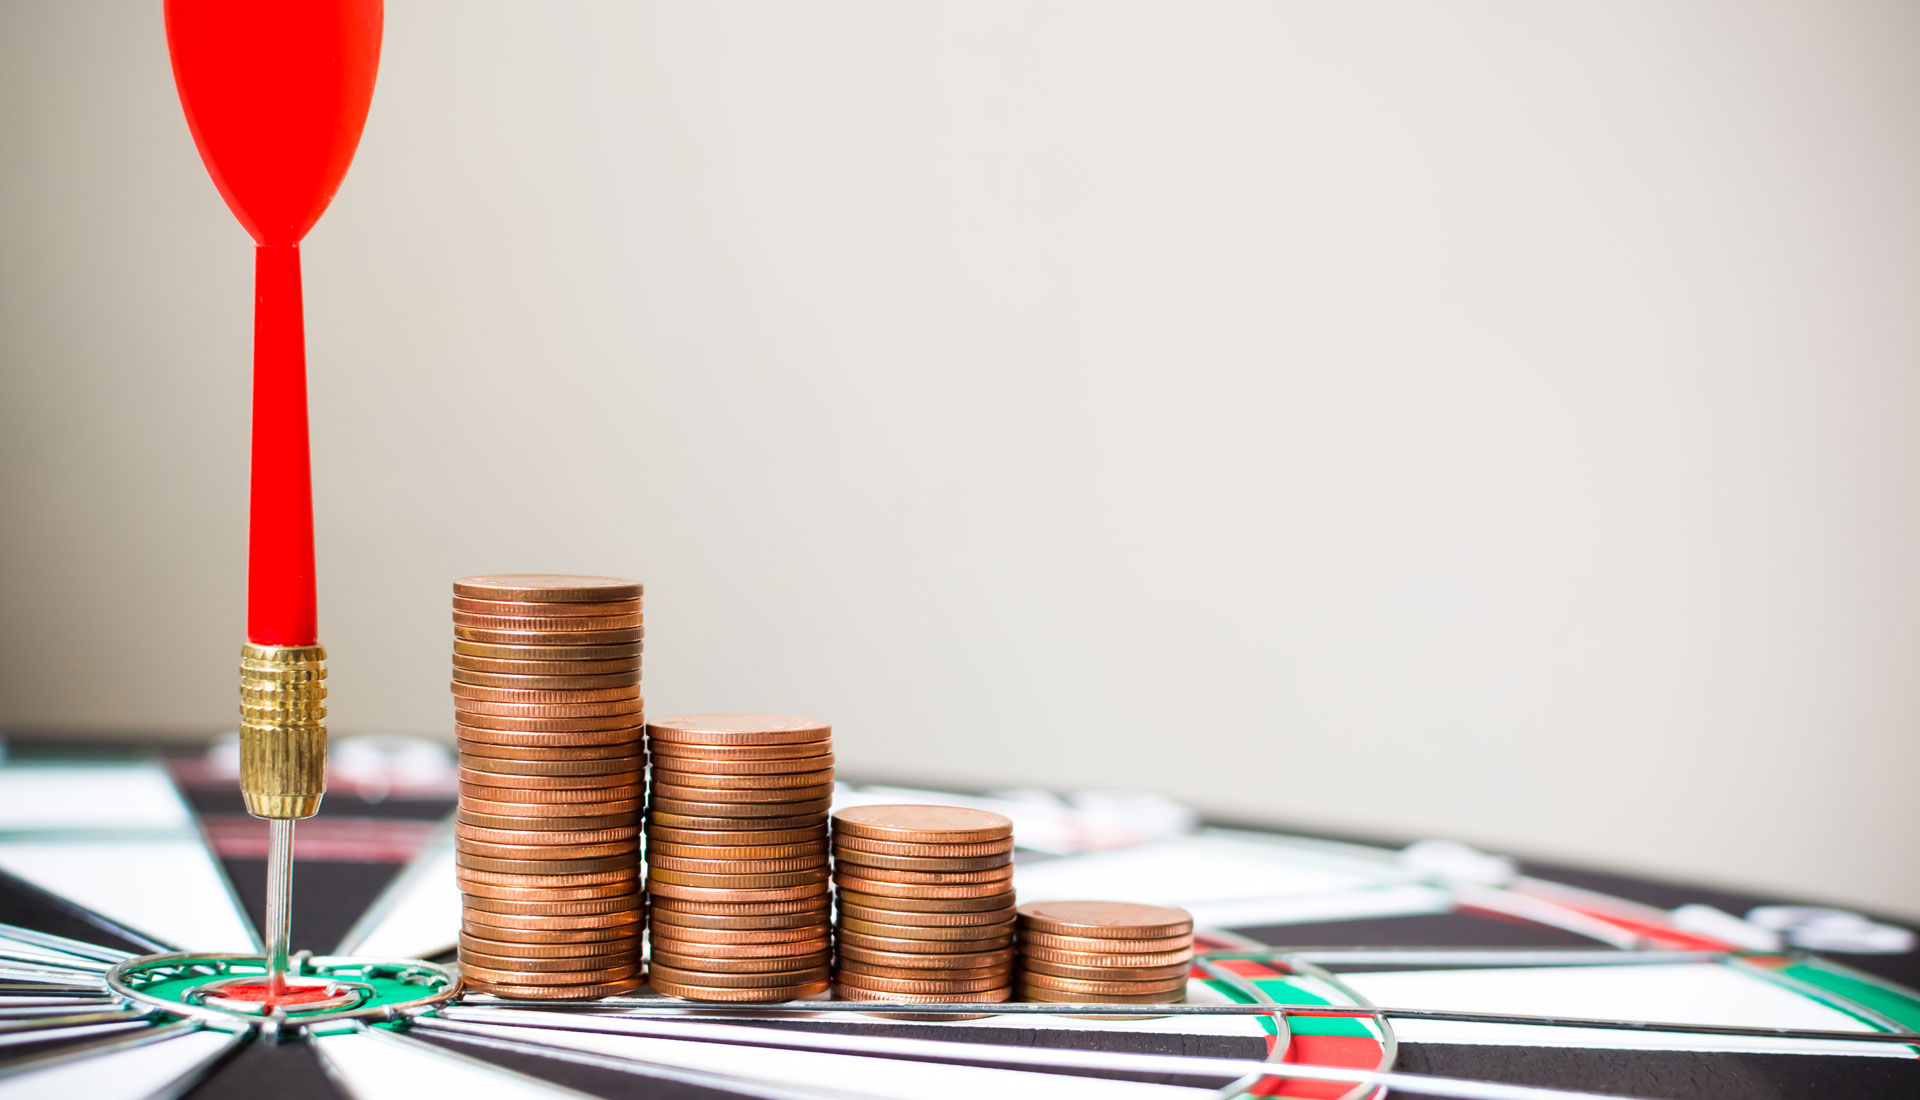 6 Simple Steps To Make Goal Based Investing Work For You